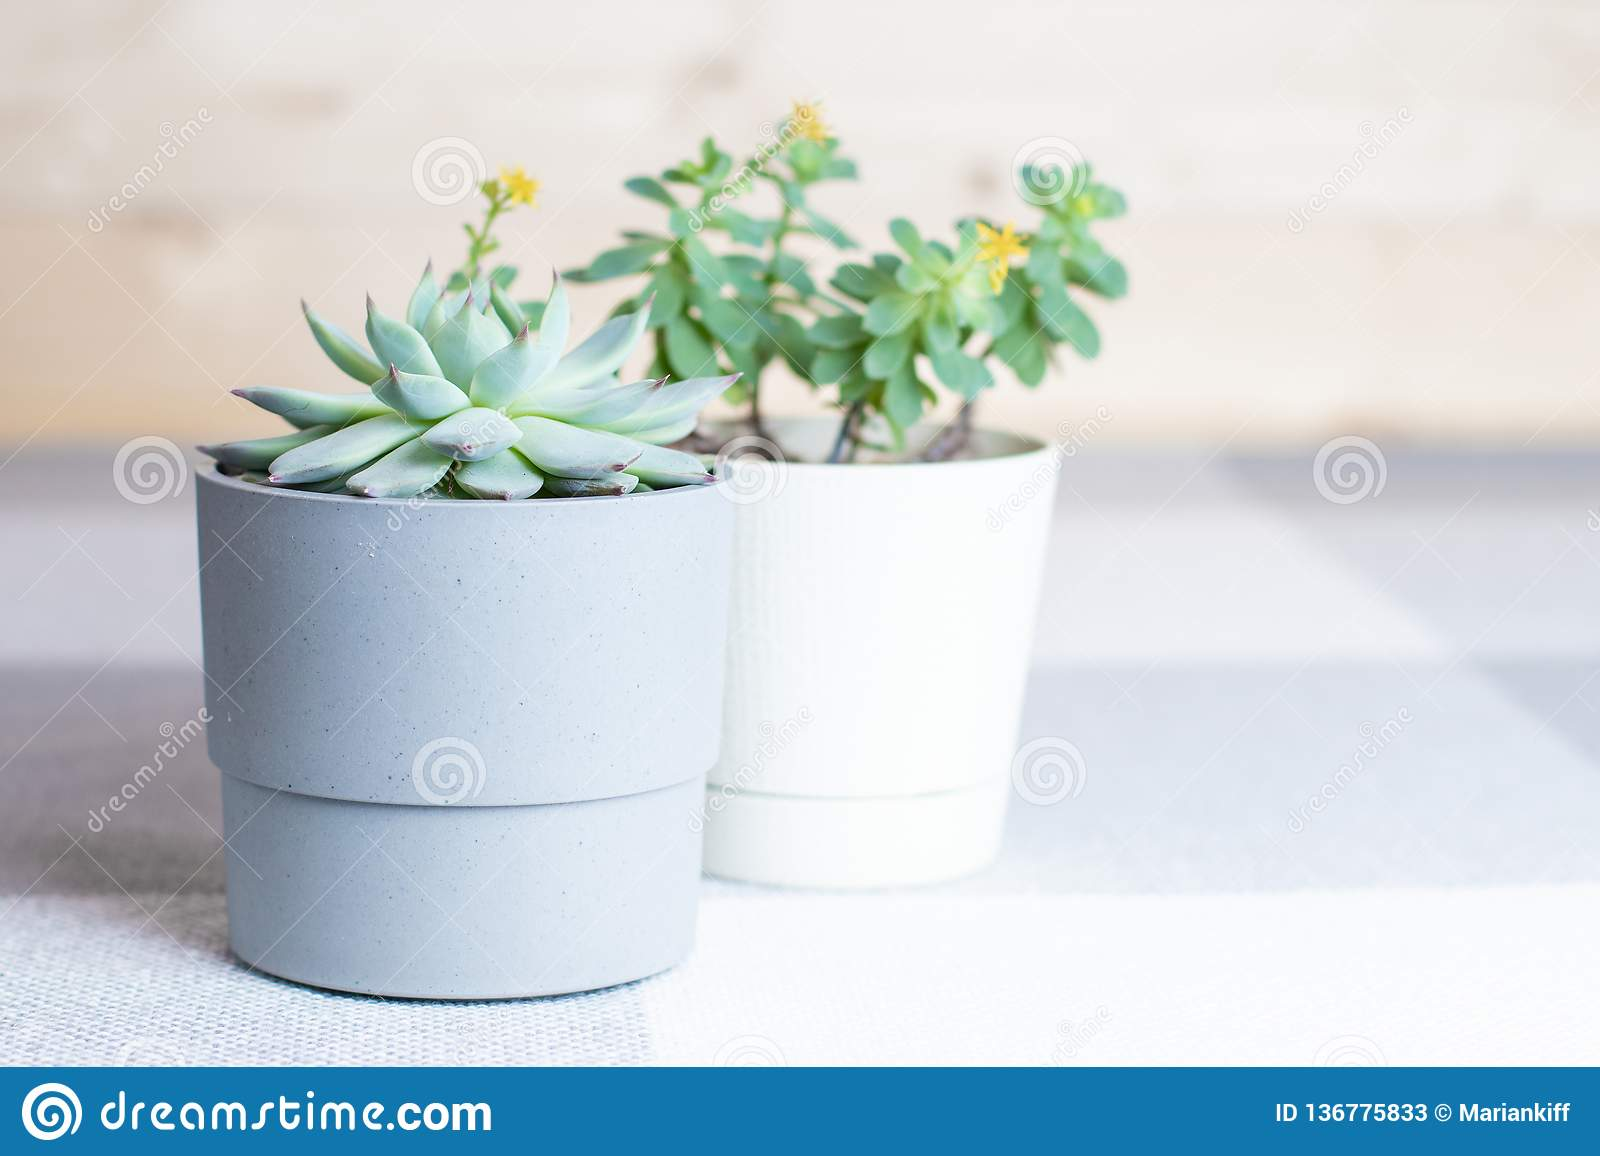 Succulent Flowers In Pots Home Interior Minimal Style Stock Image Image Of Garden Cotyledon 136775833